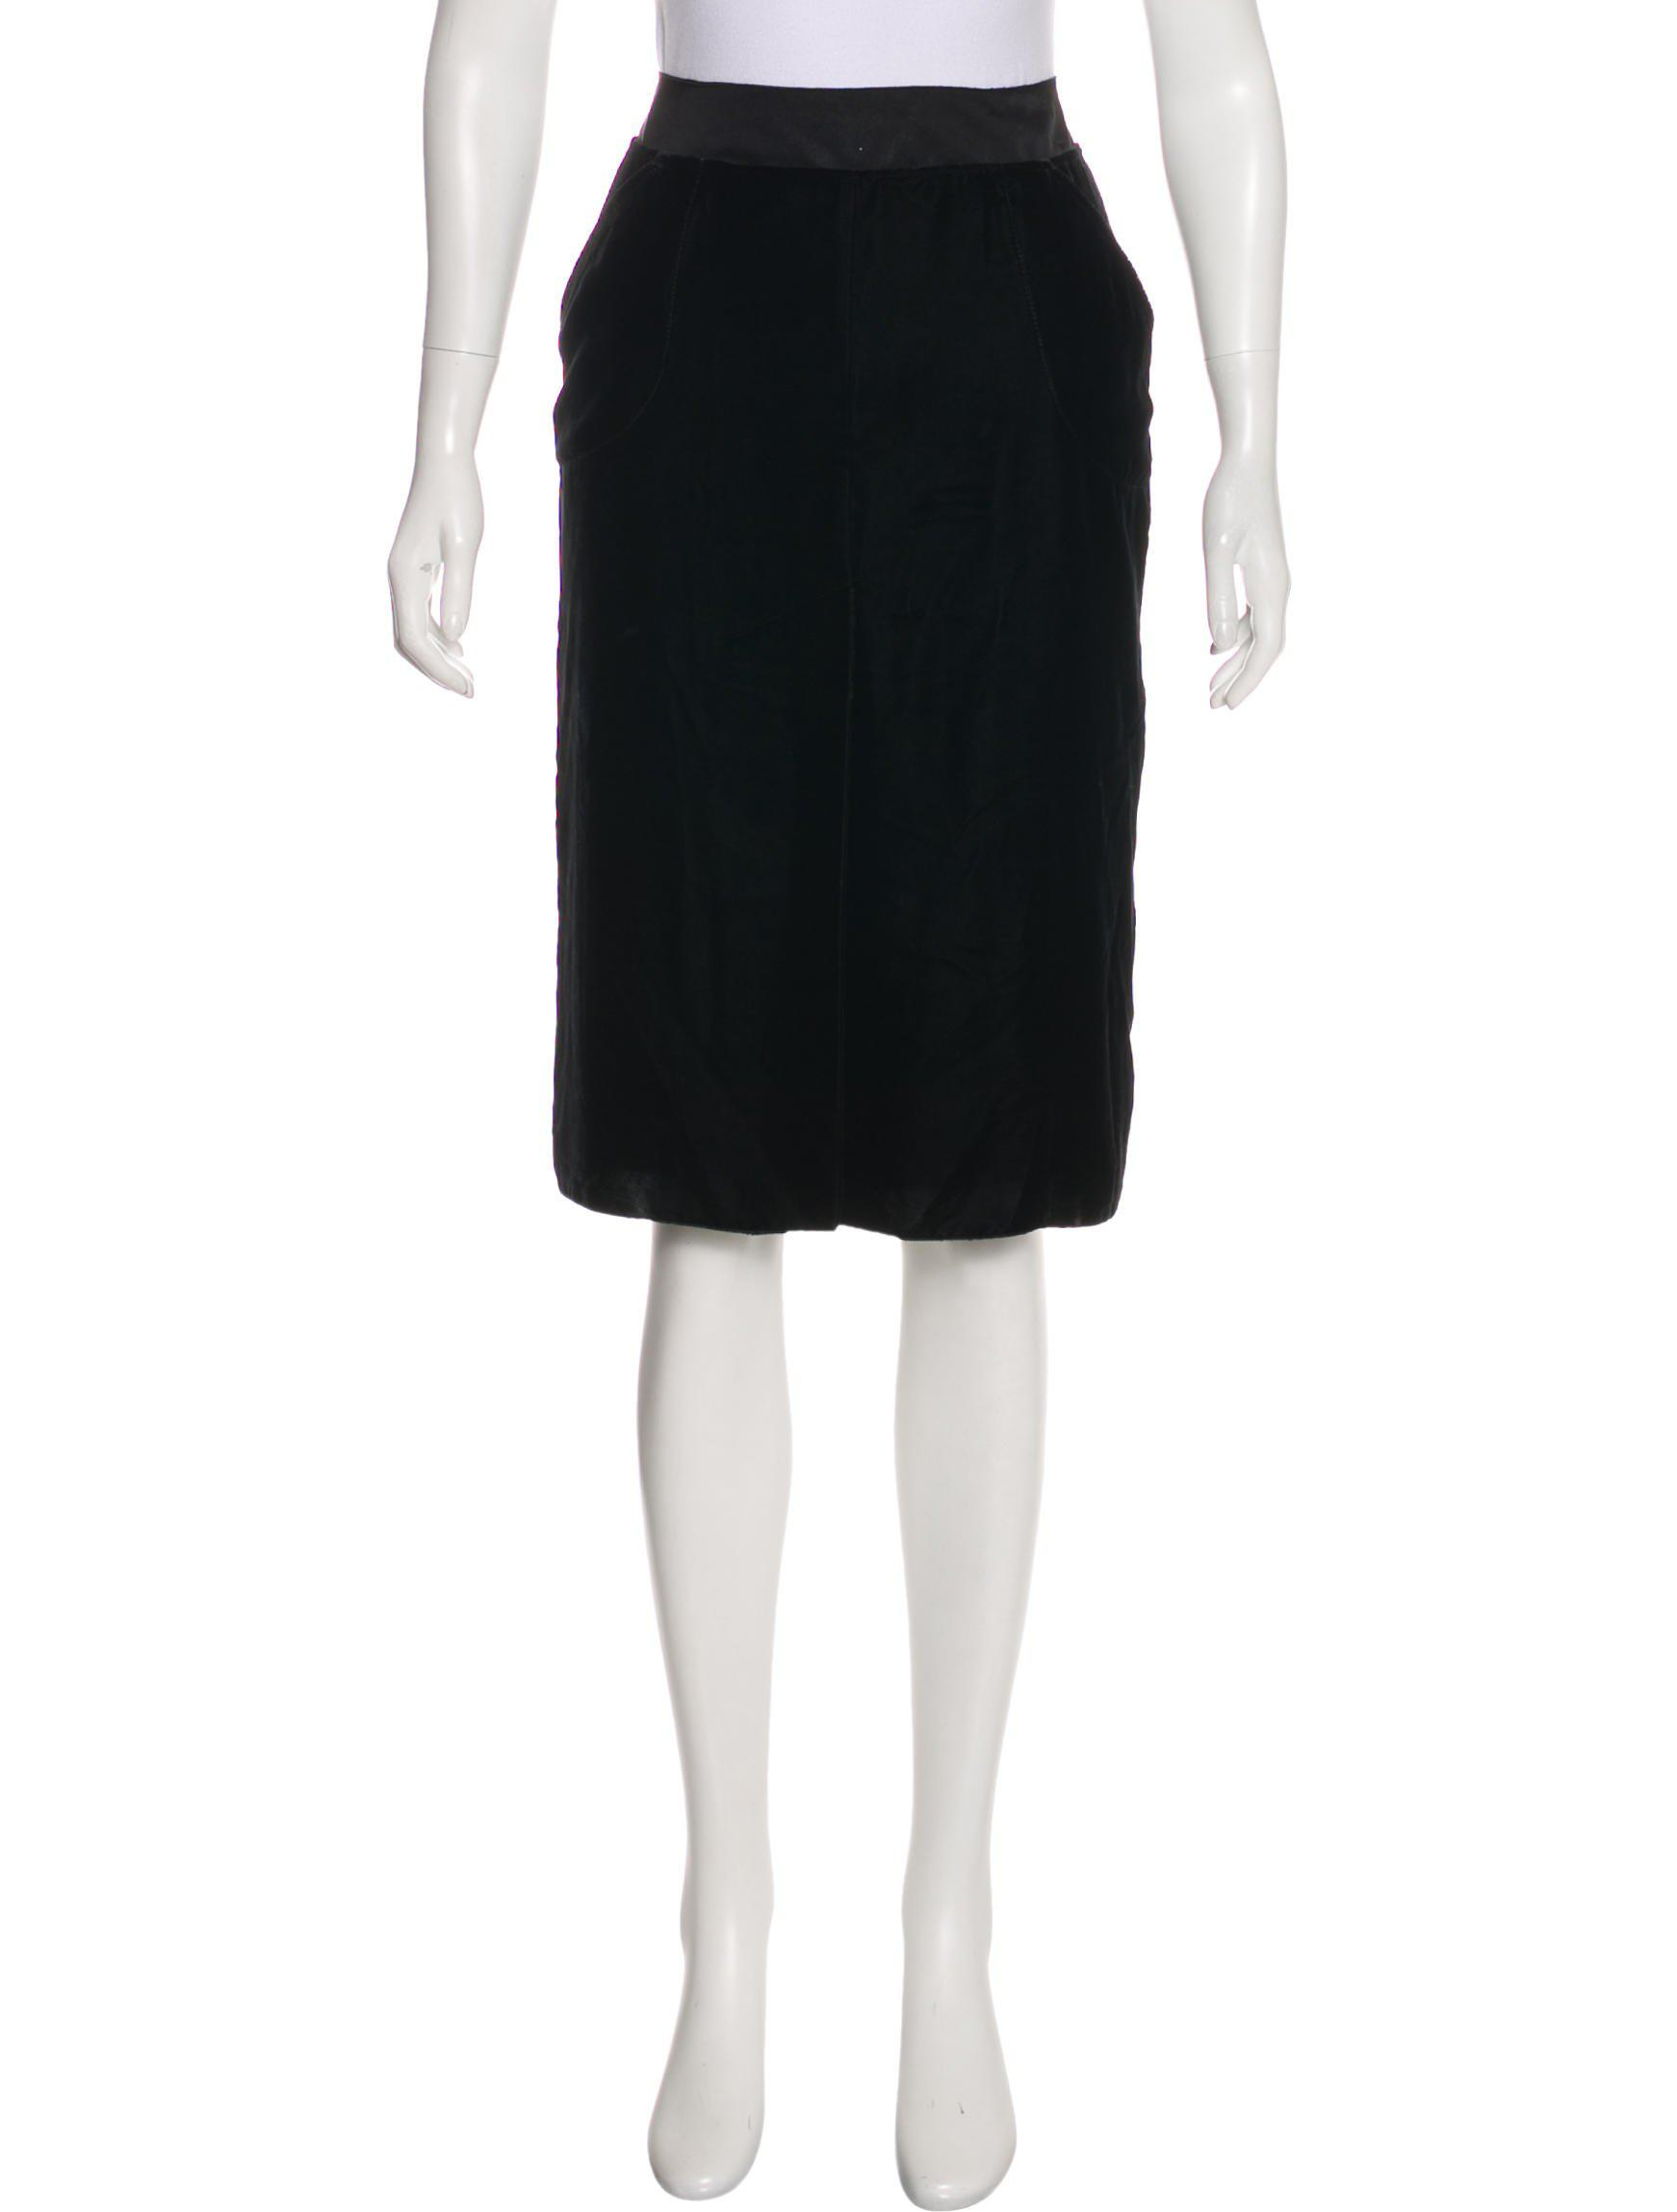 Lanvin Velvet Pencil Skirt Outlet Store Buy Cheap Pick A Best Comfortable Outlet With Mastercard Outlet Free Shipping I4Uyjp